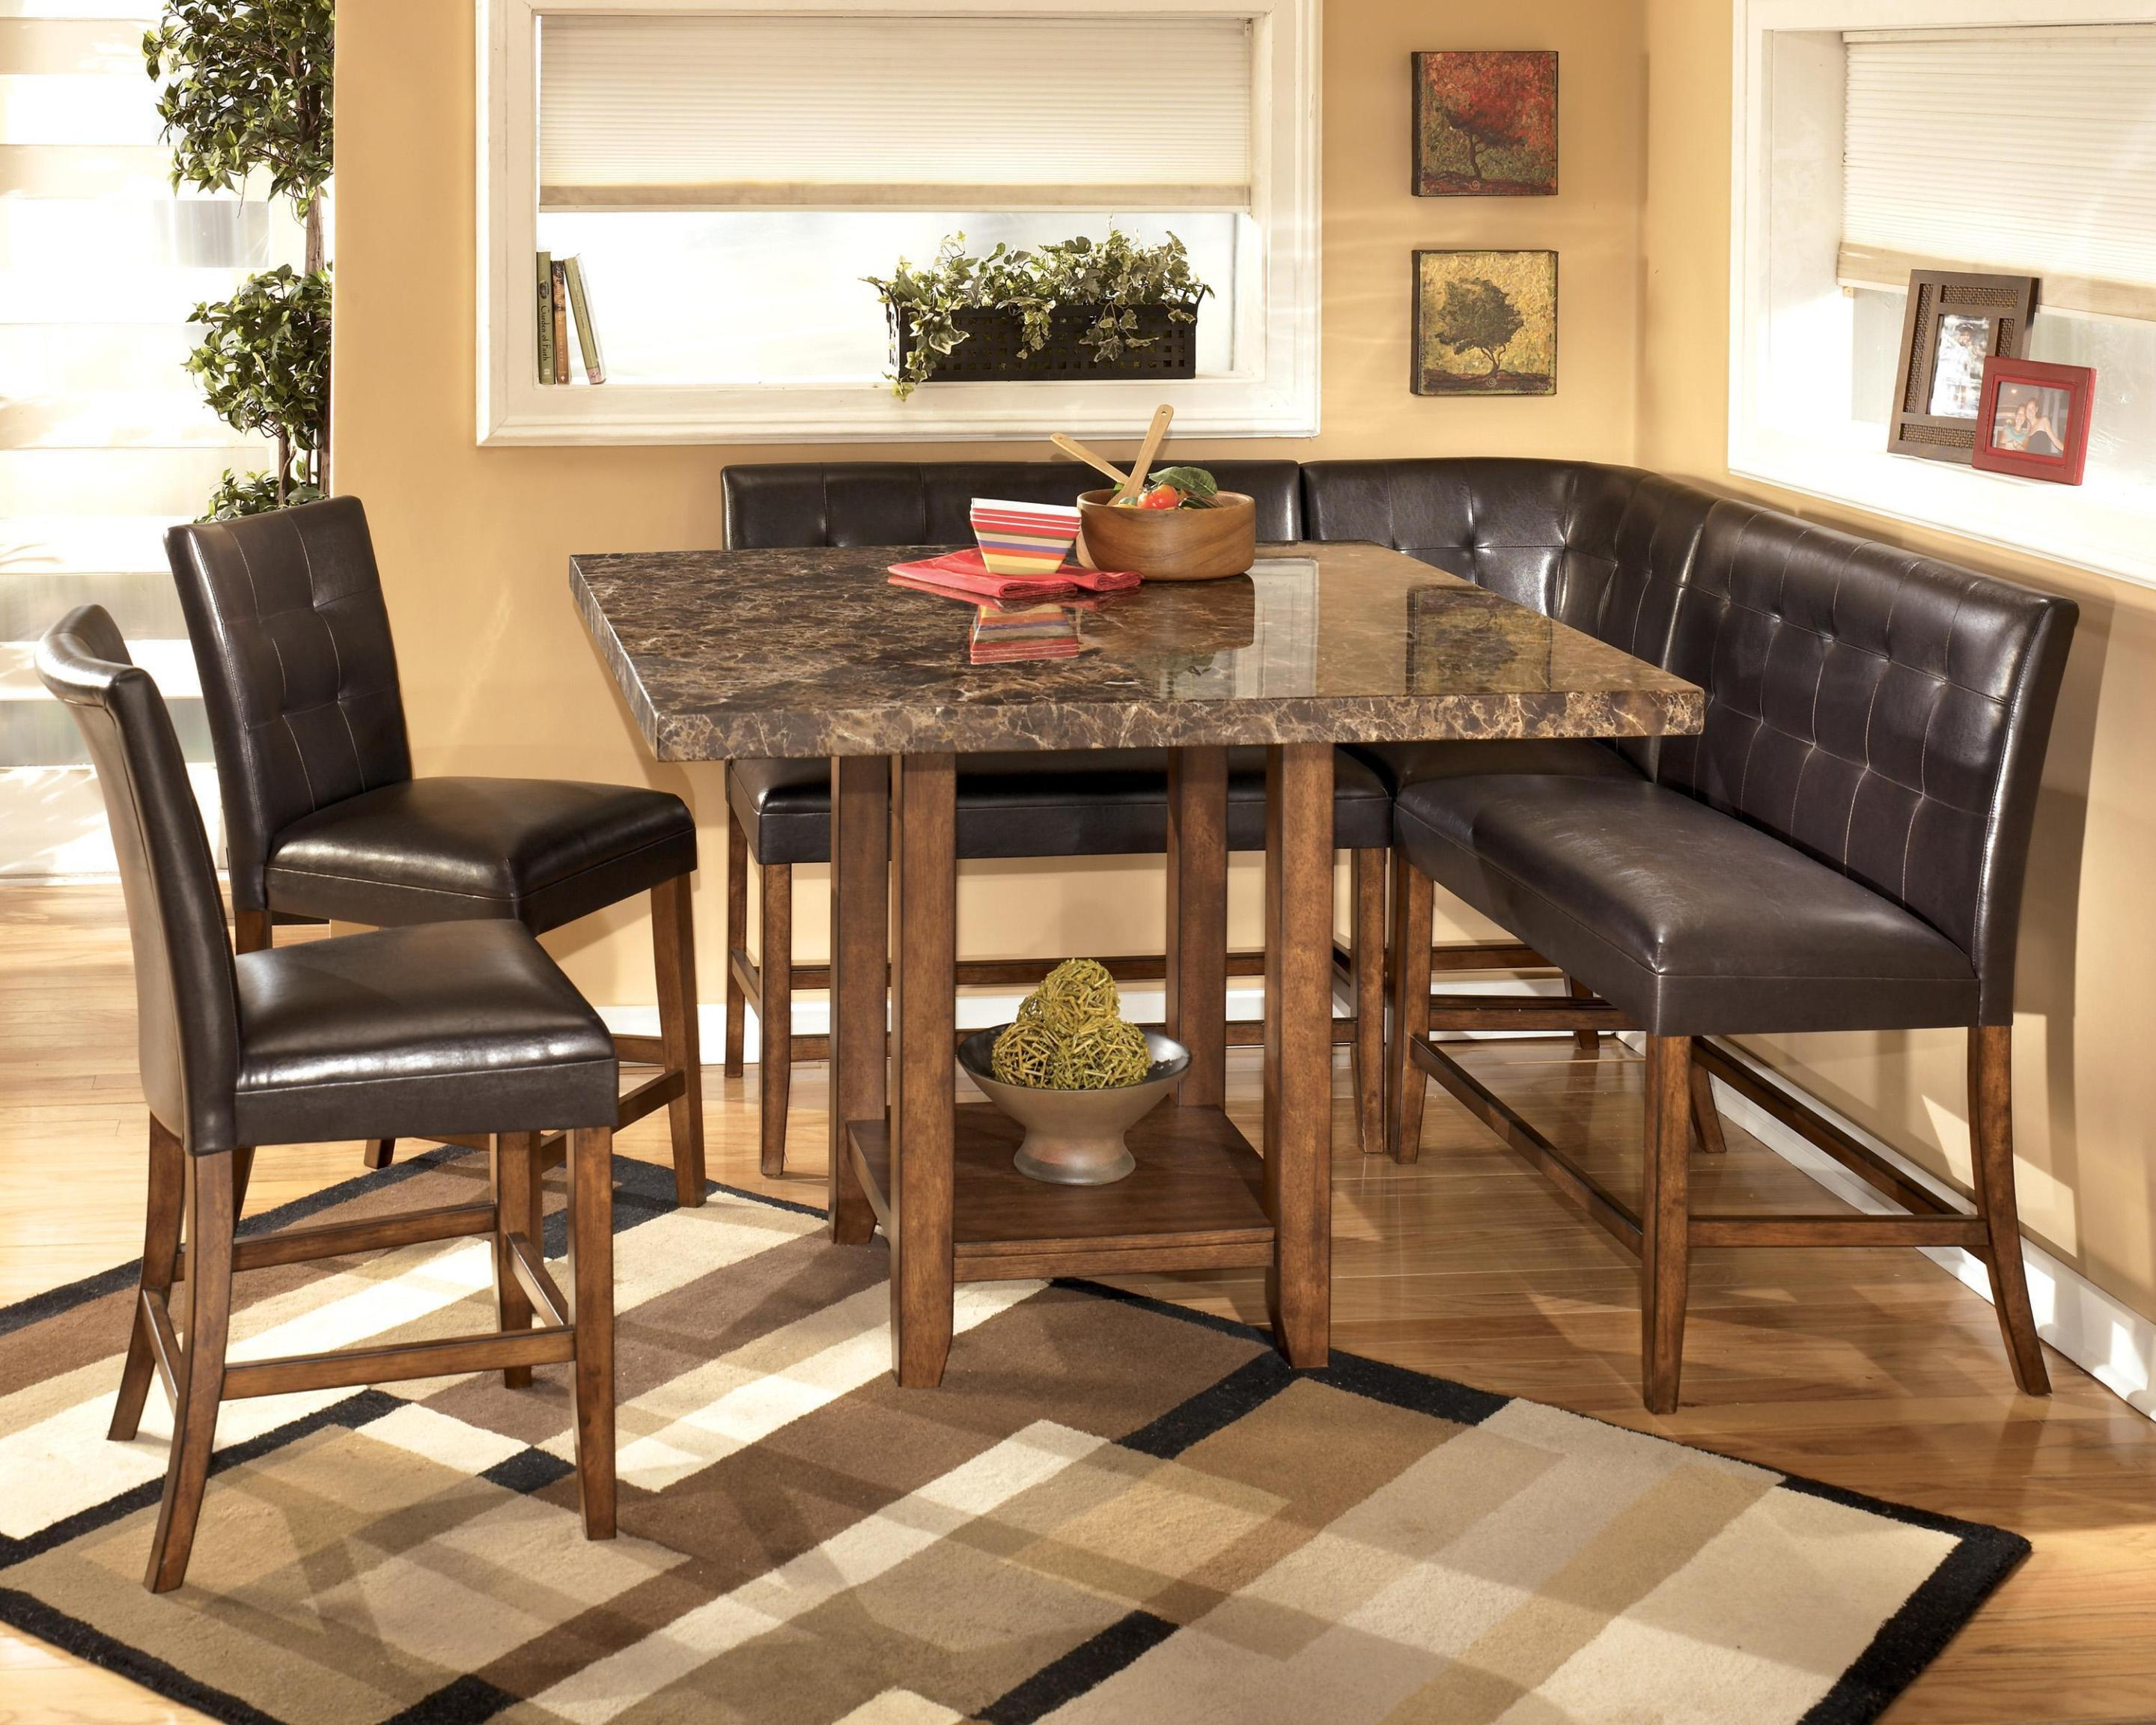 Image of: Bar Height Table And Chairs